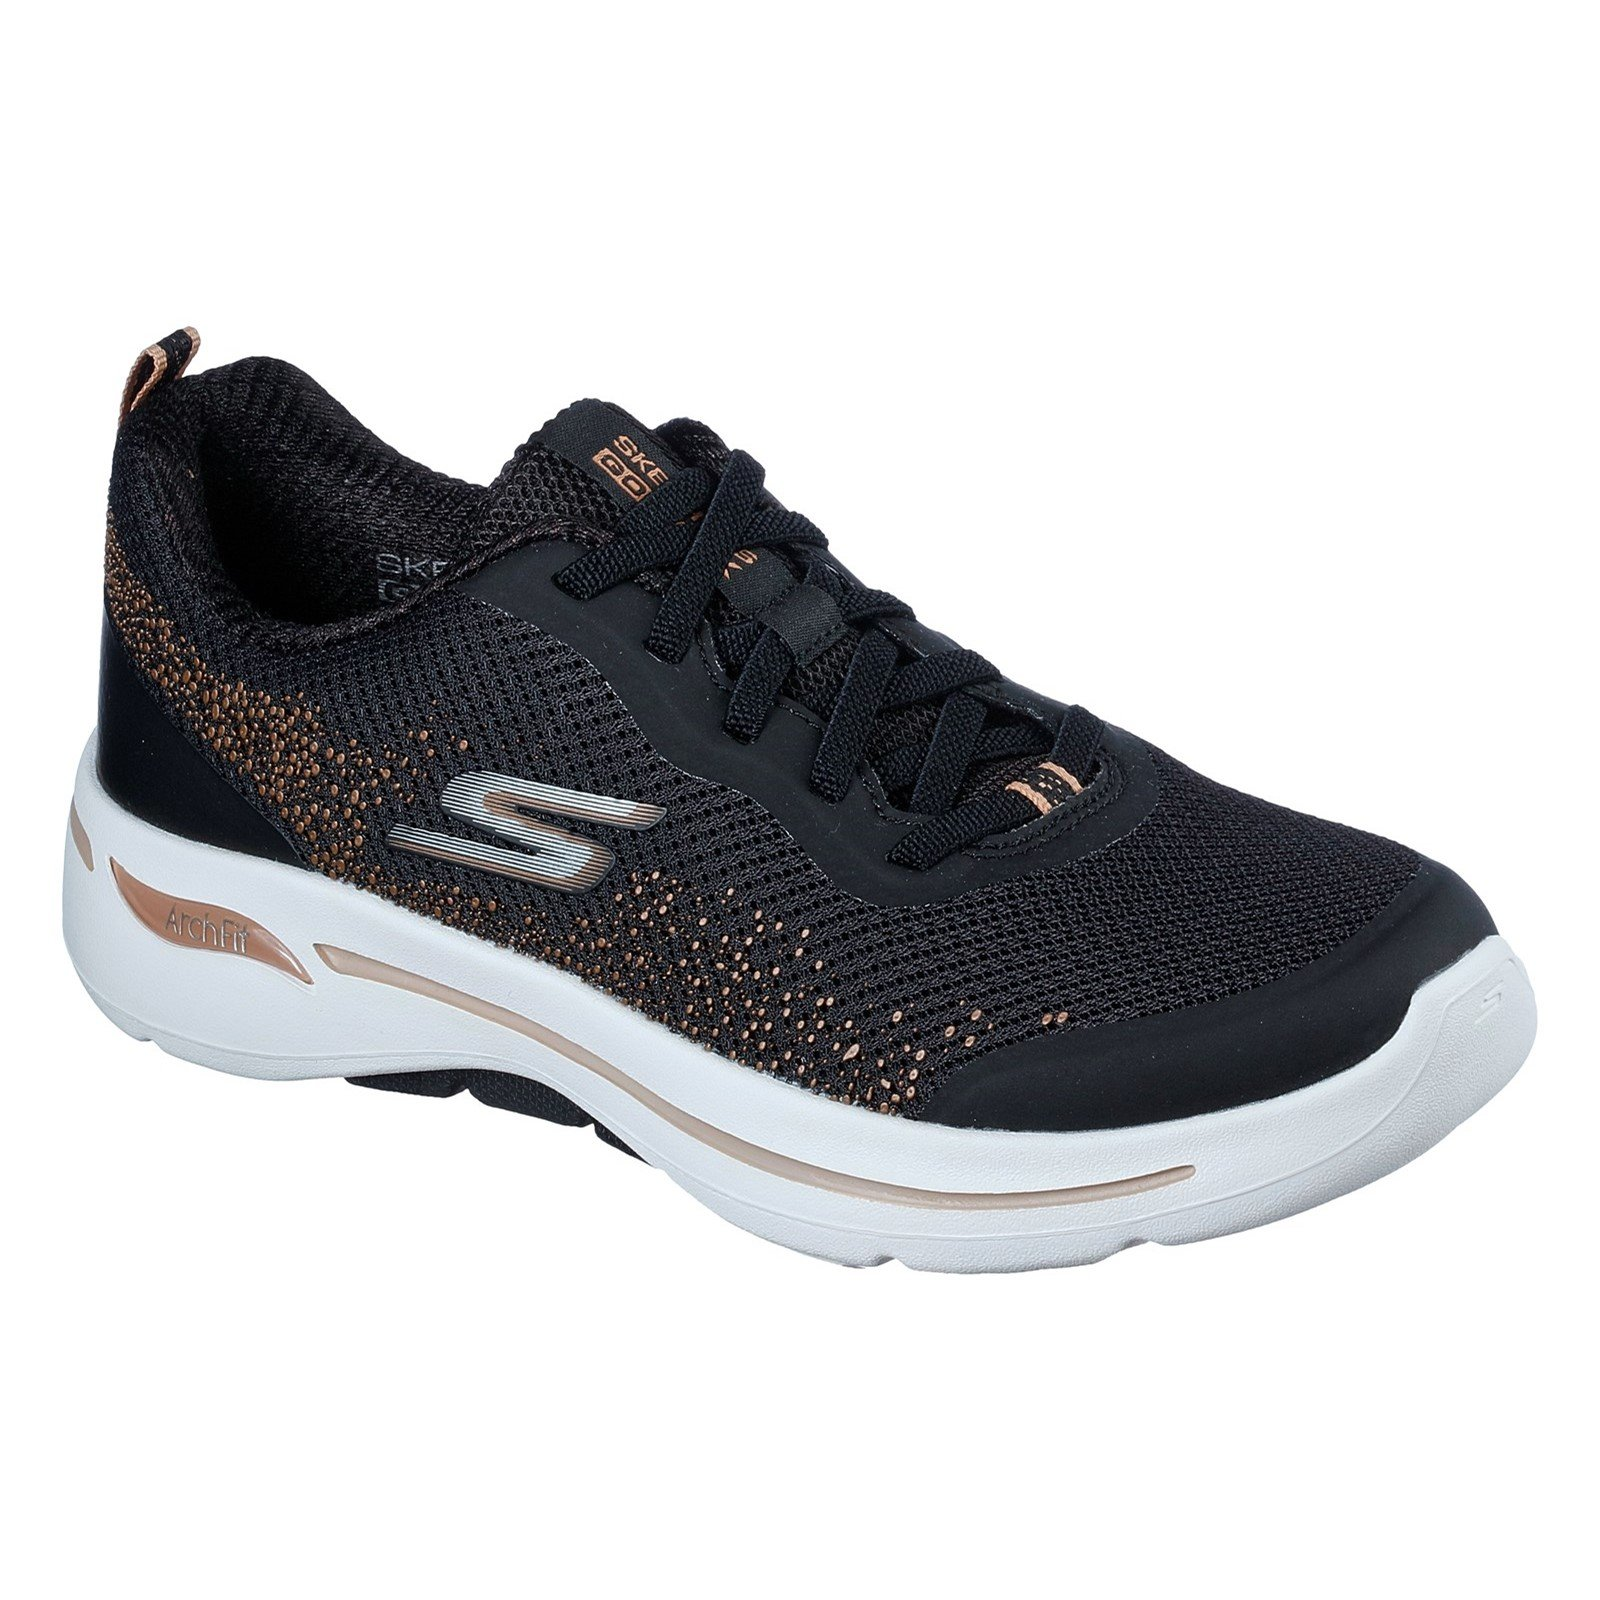 Skechers Women's Go Walk Arch Fit Flying Stars Trainer Various Colours 32841 - Black/Gold 8